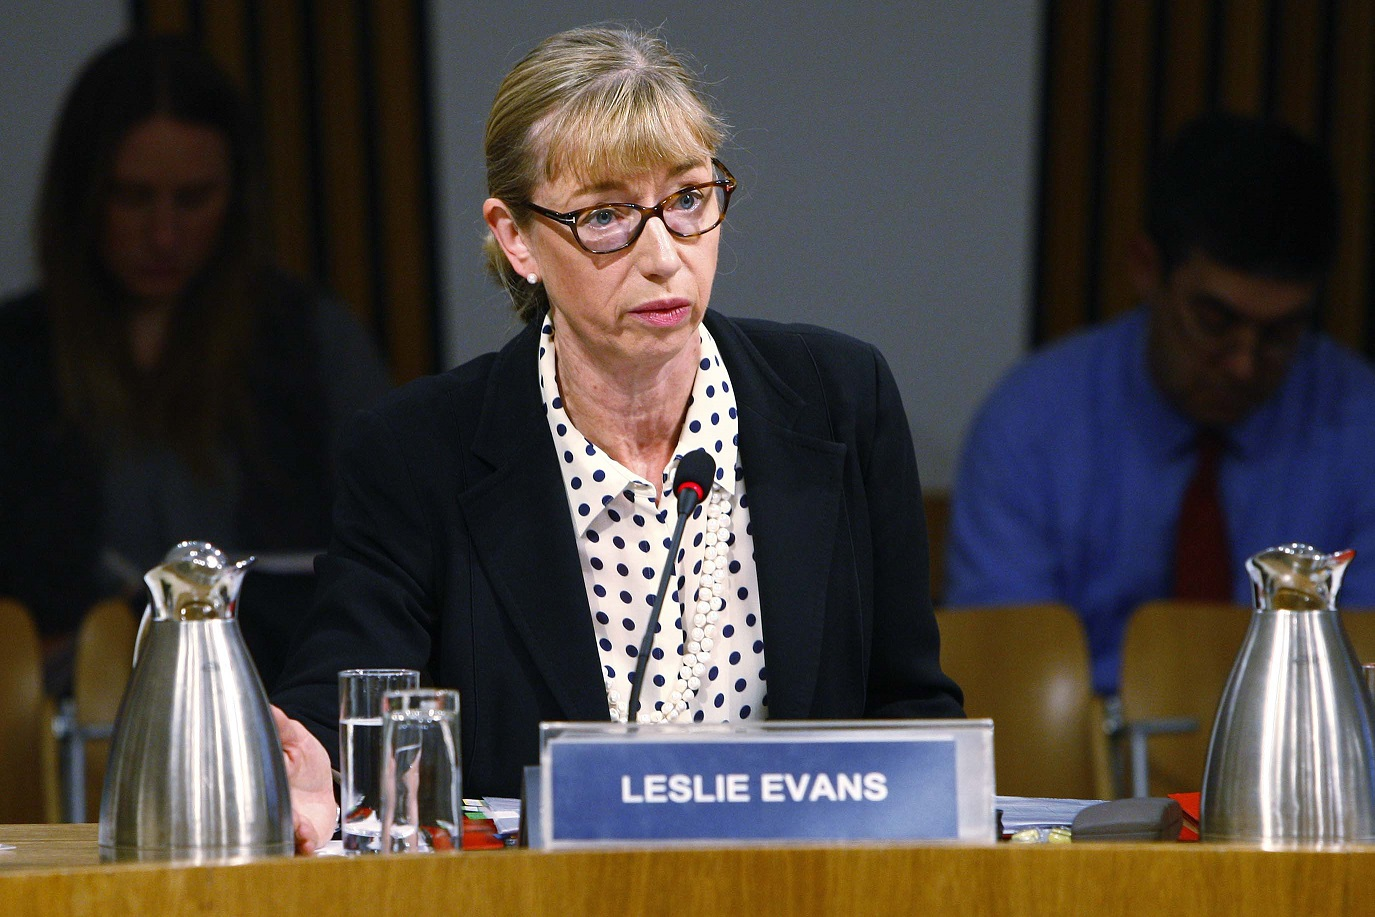 Permanent Secretary Leslie Evans giving evidence to the Committee